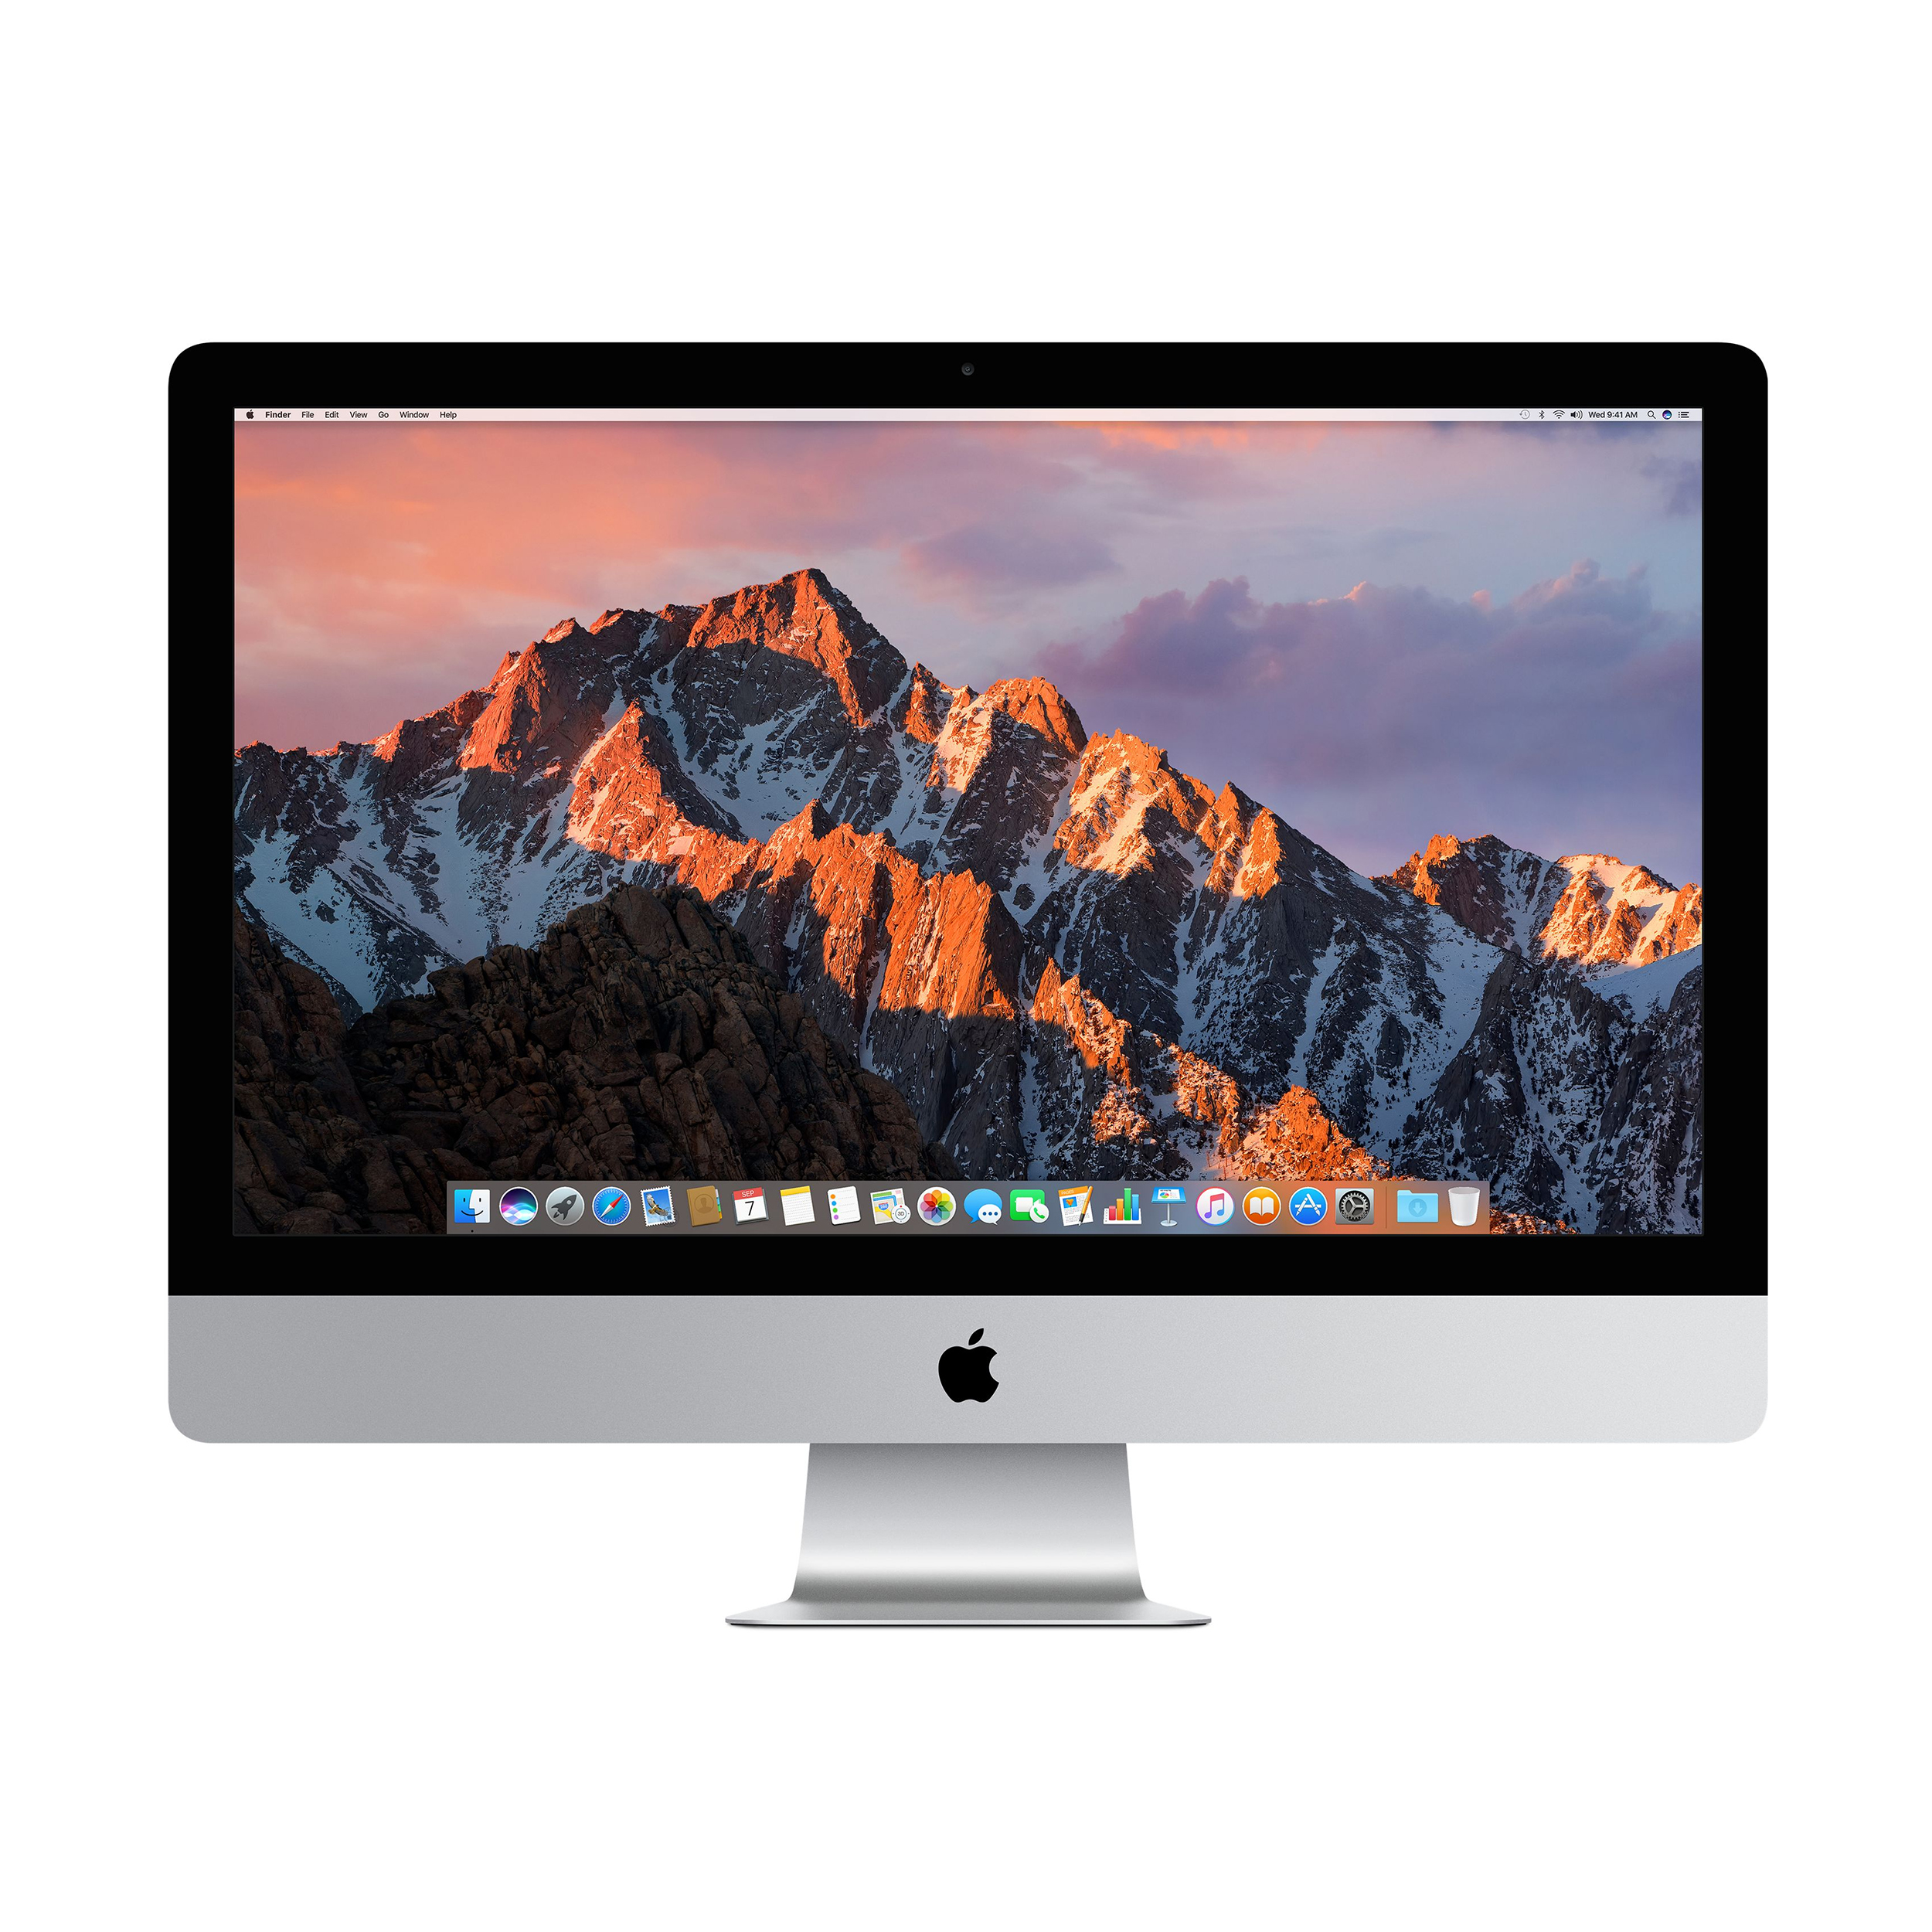 Image for Apple iMac 21.5inch 8th Generation MacOS 4K Display i5 Processor 8GB Ref MRT42B/A